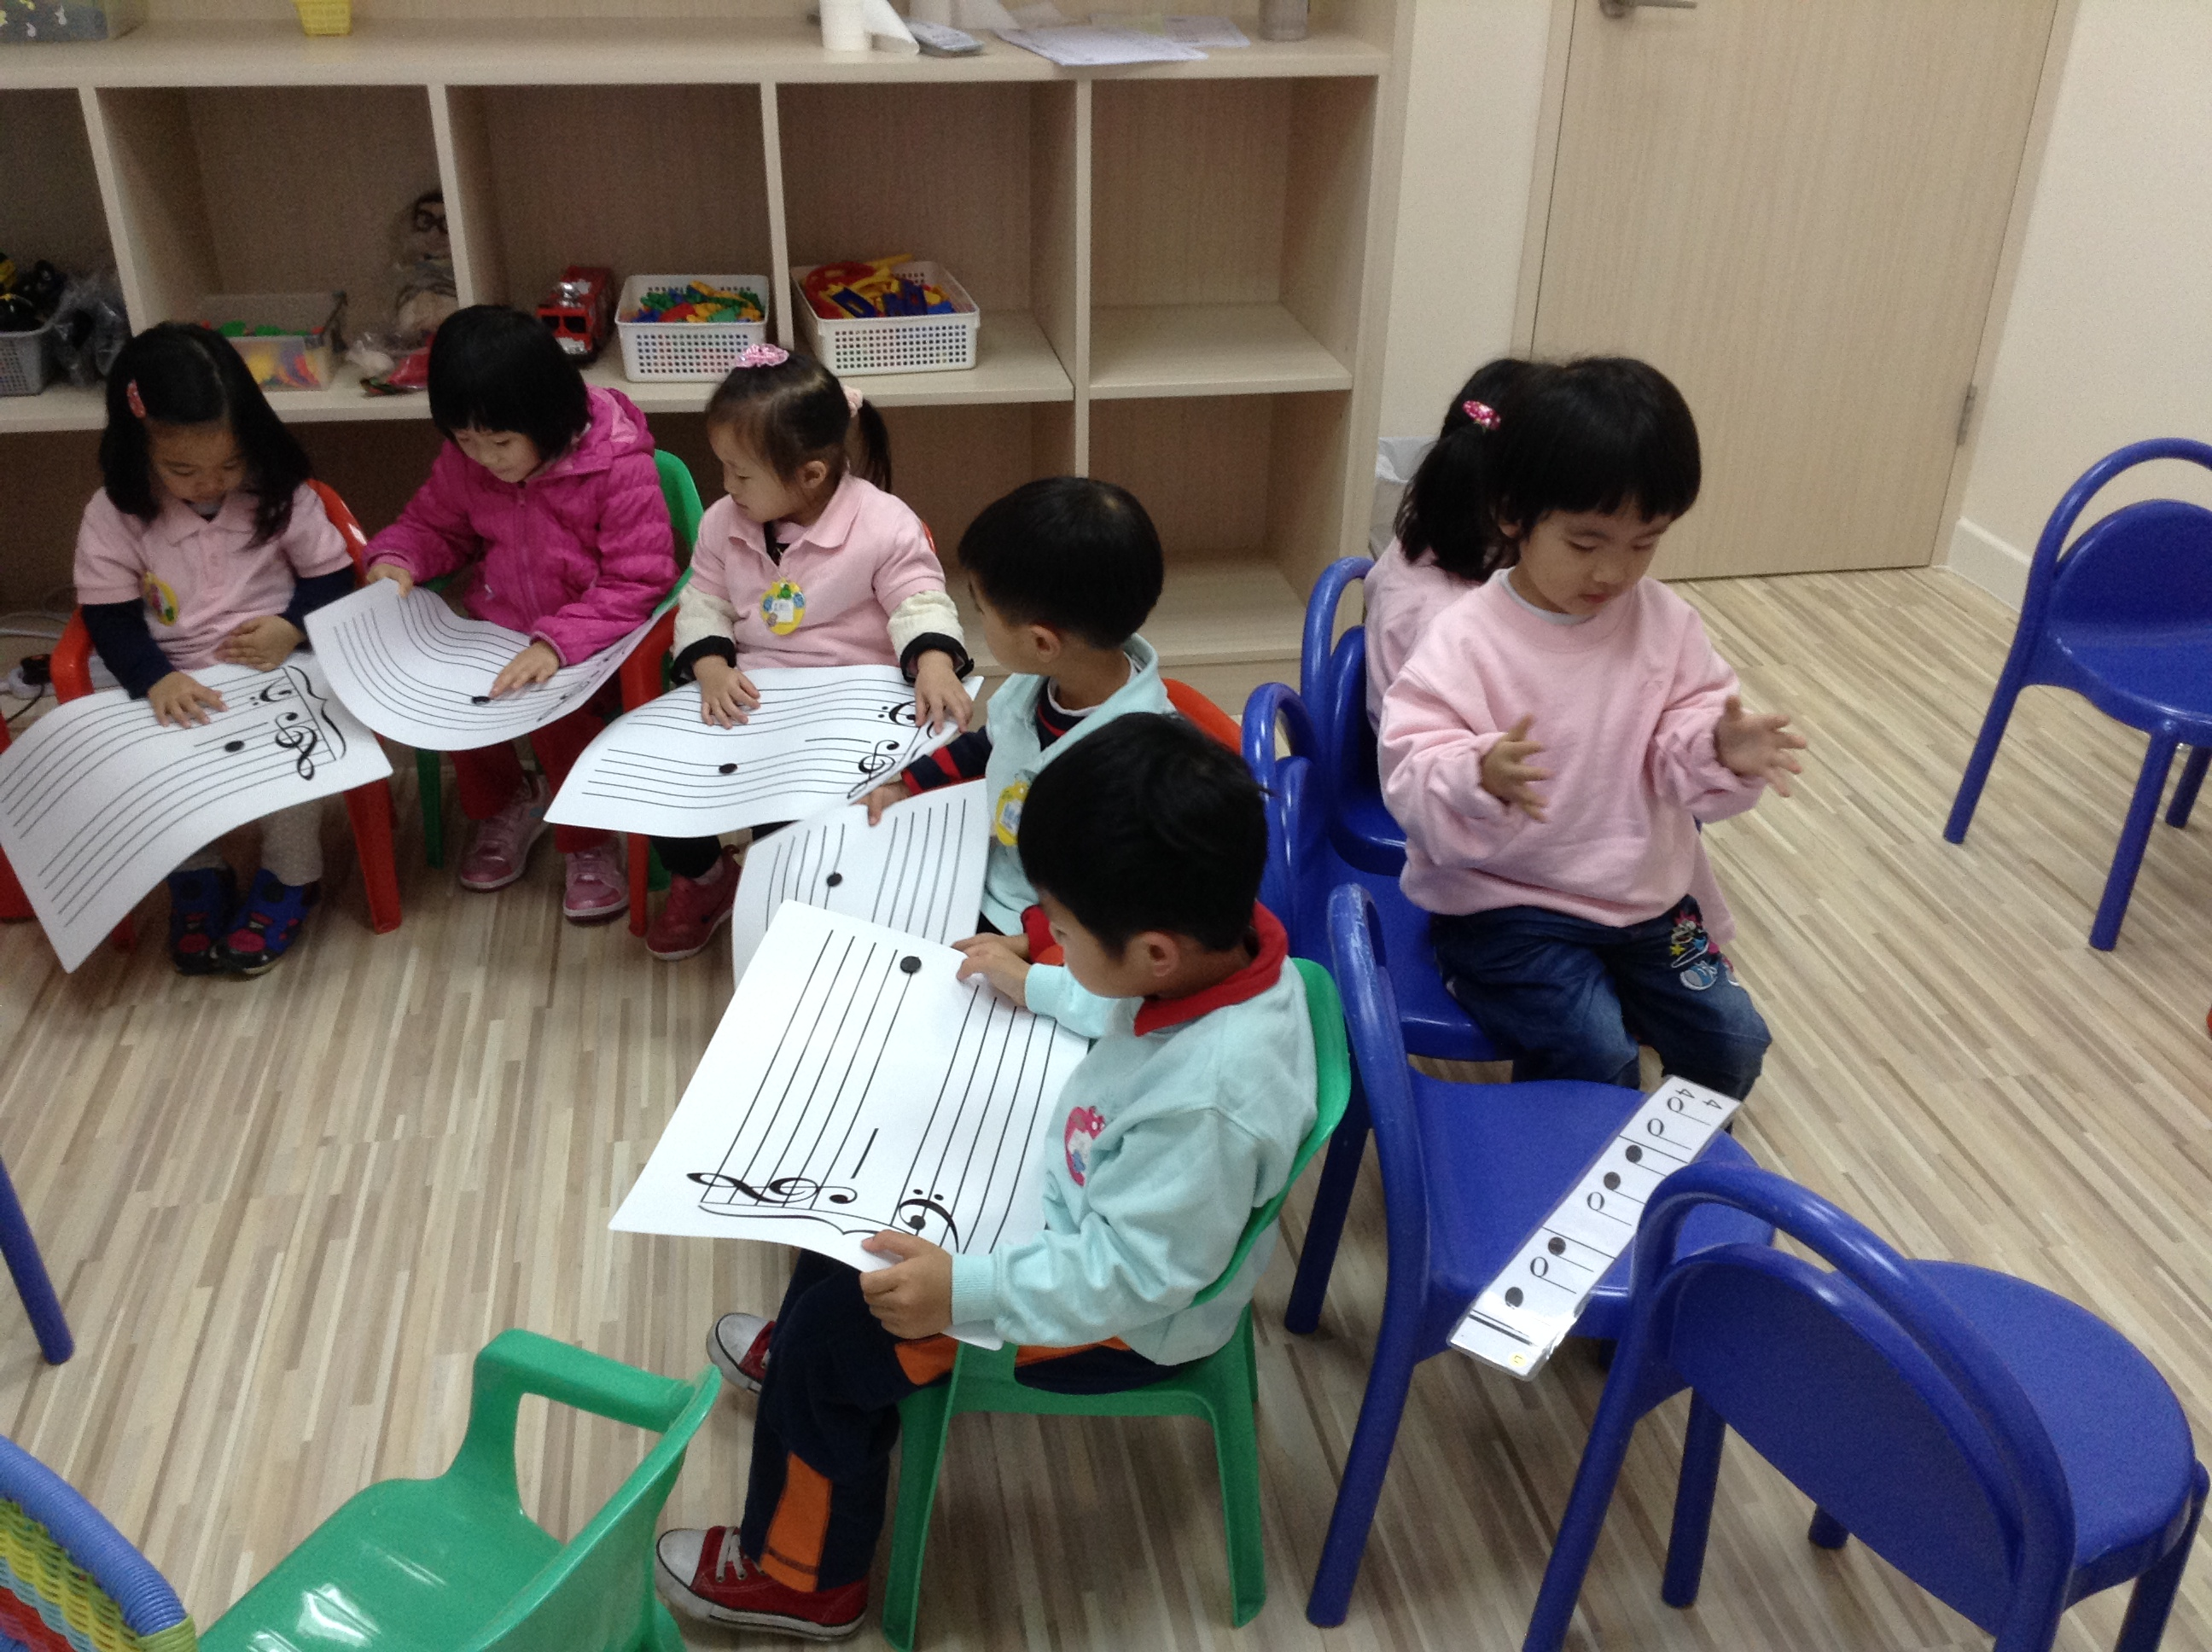 Auditions for Jan 2019 Preschool Courses (PCPS/CPS) for Kowloon/N.T. Centres (Dates: Nov 25 and Dec 9)